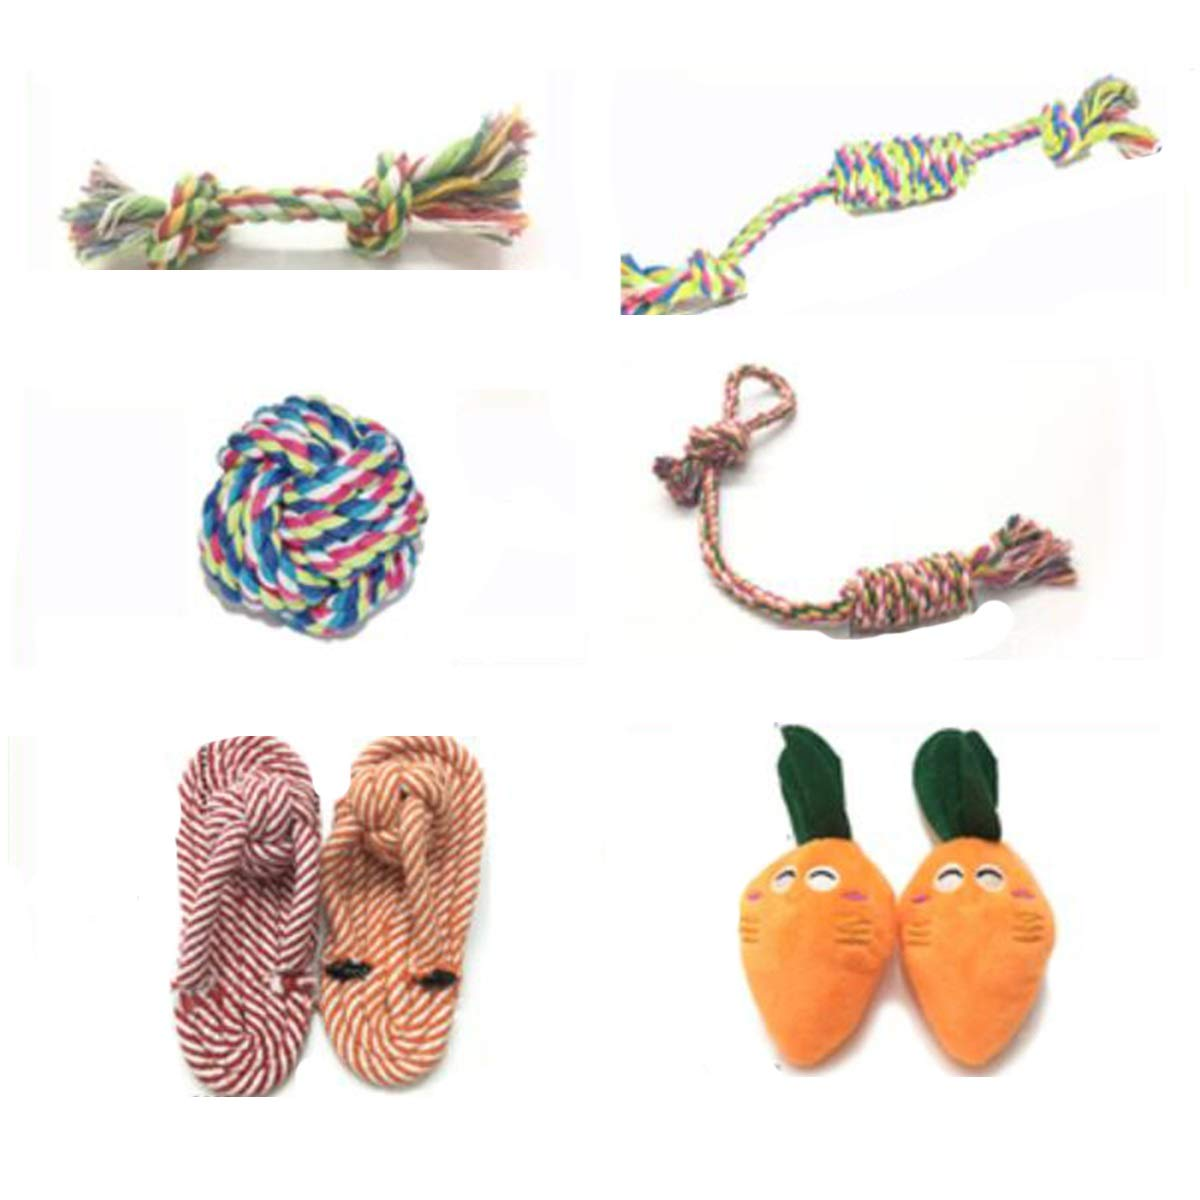 Cotton rope Pet Toys, 6 Sets of pet Molar Toys, Cotton Knots, Candy Knots, Cotton Rope Balls, Basket Candy, Cotton Rope Slippers, BB Sounding Plush Carreds, Small Dog Molar Sets (Material   Cotton Rope)